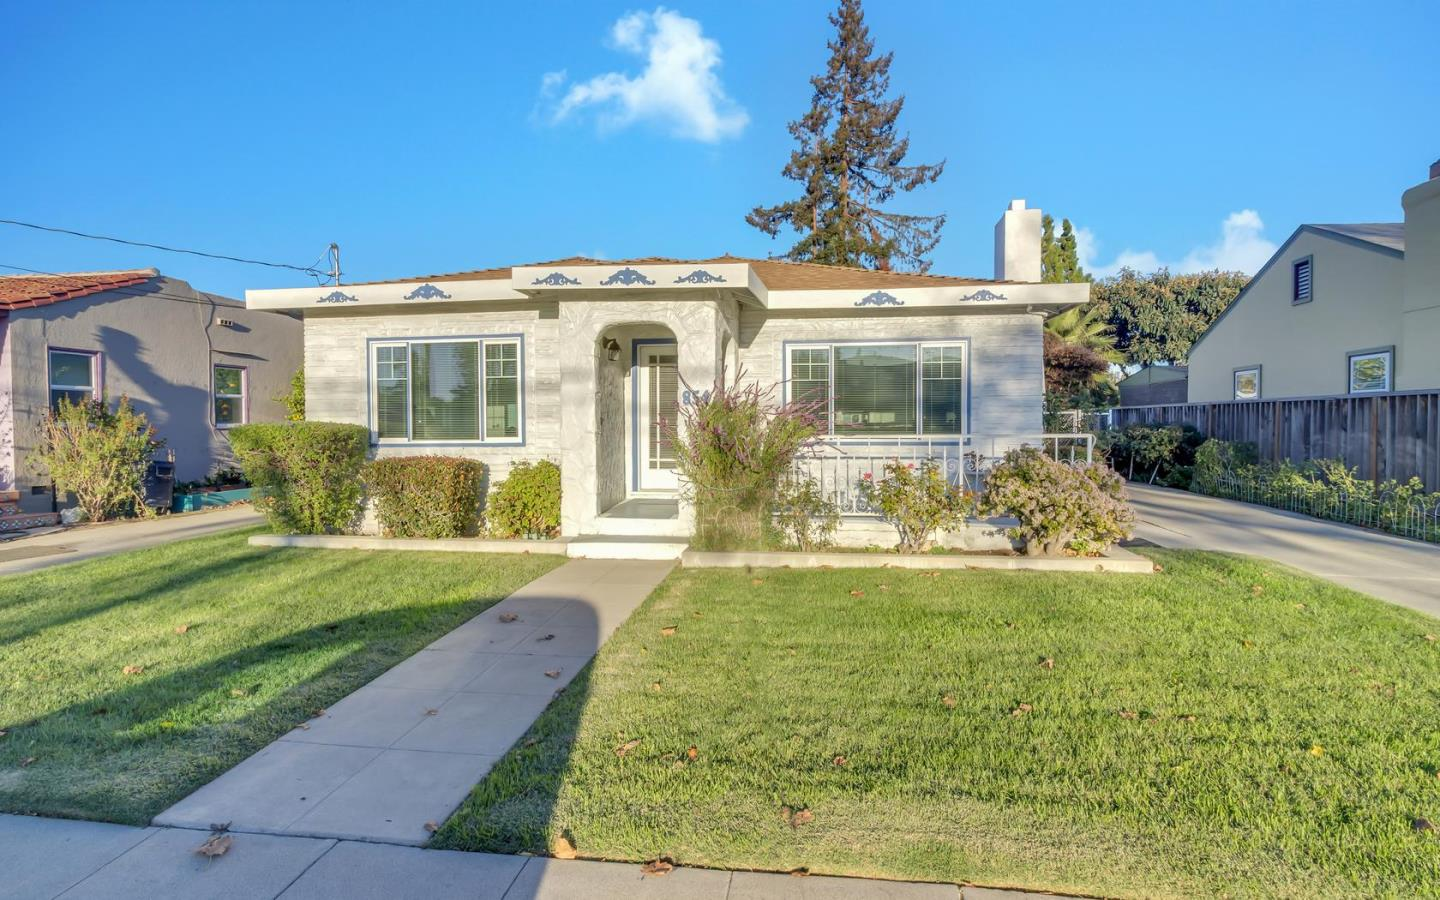 Single Family Home for Sale at 854 N 4th Street San Jose, California 95112 United States